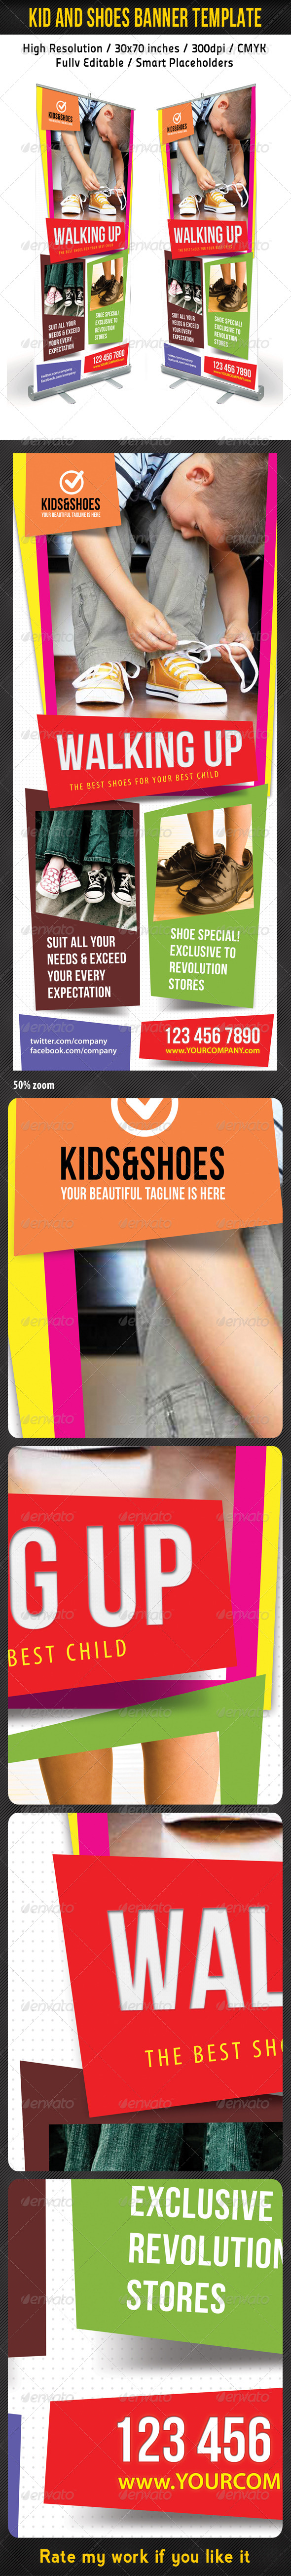 Kid And Shoes Banner Template - Signage Print Templates